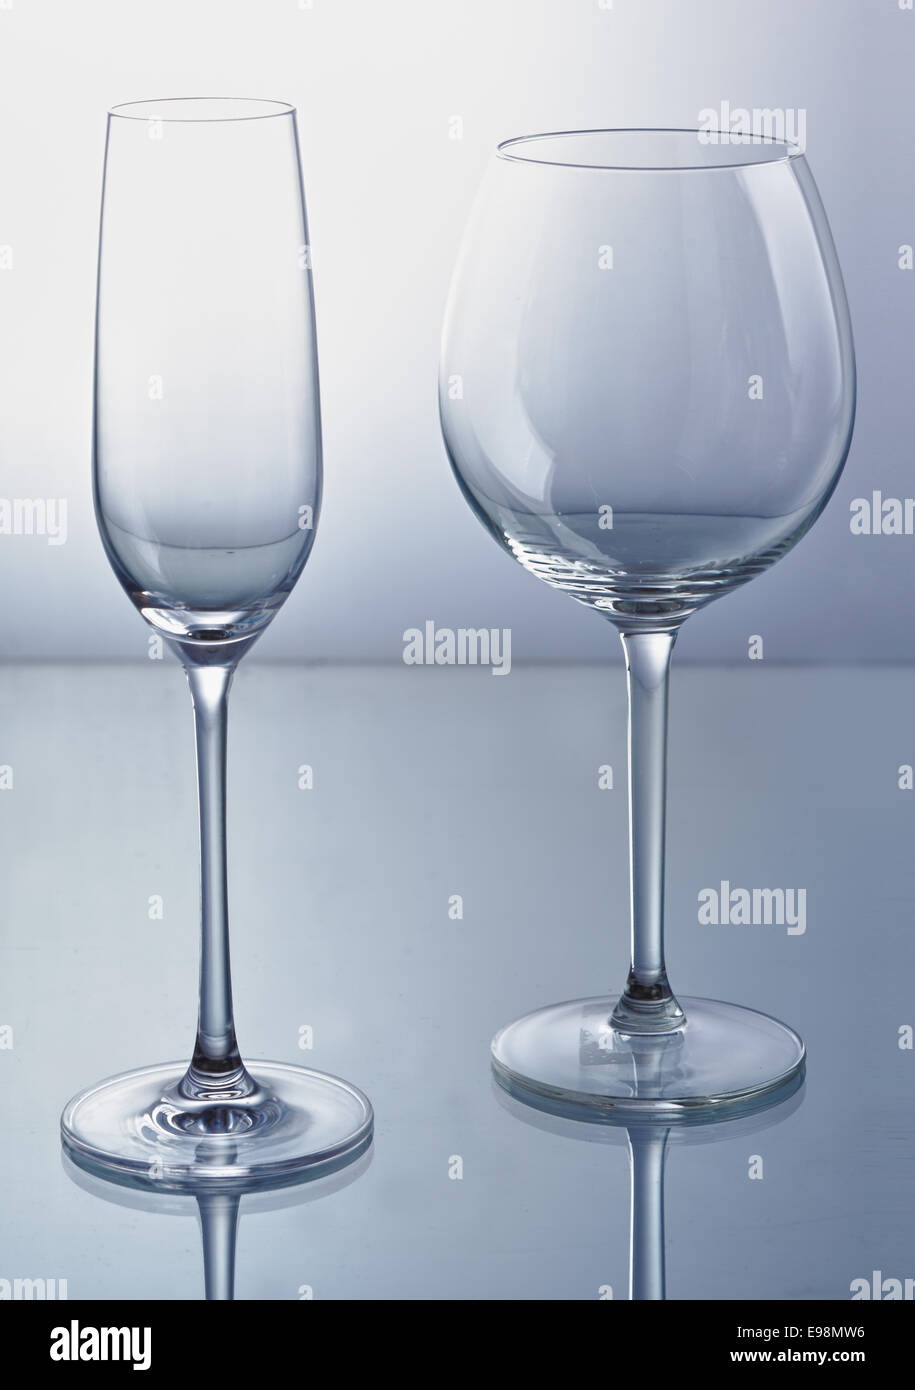 Empty wine and champagne glass with reflexion. - Stock Image